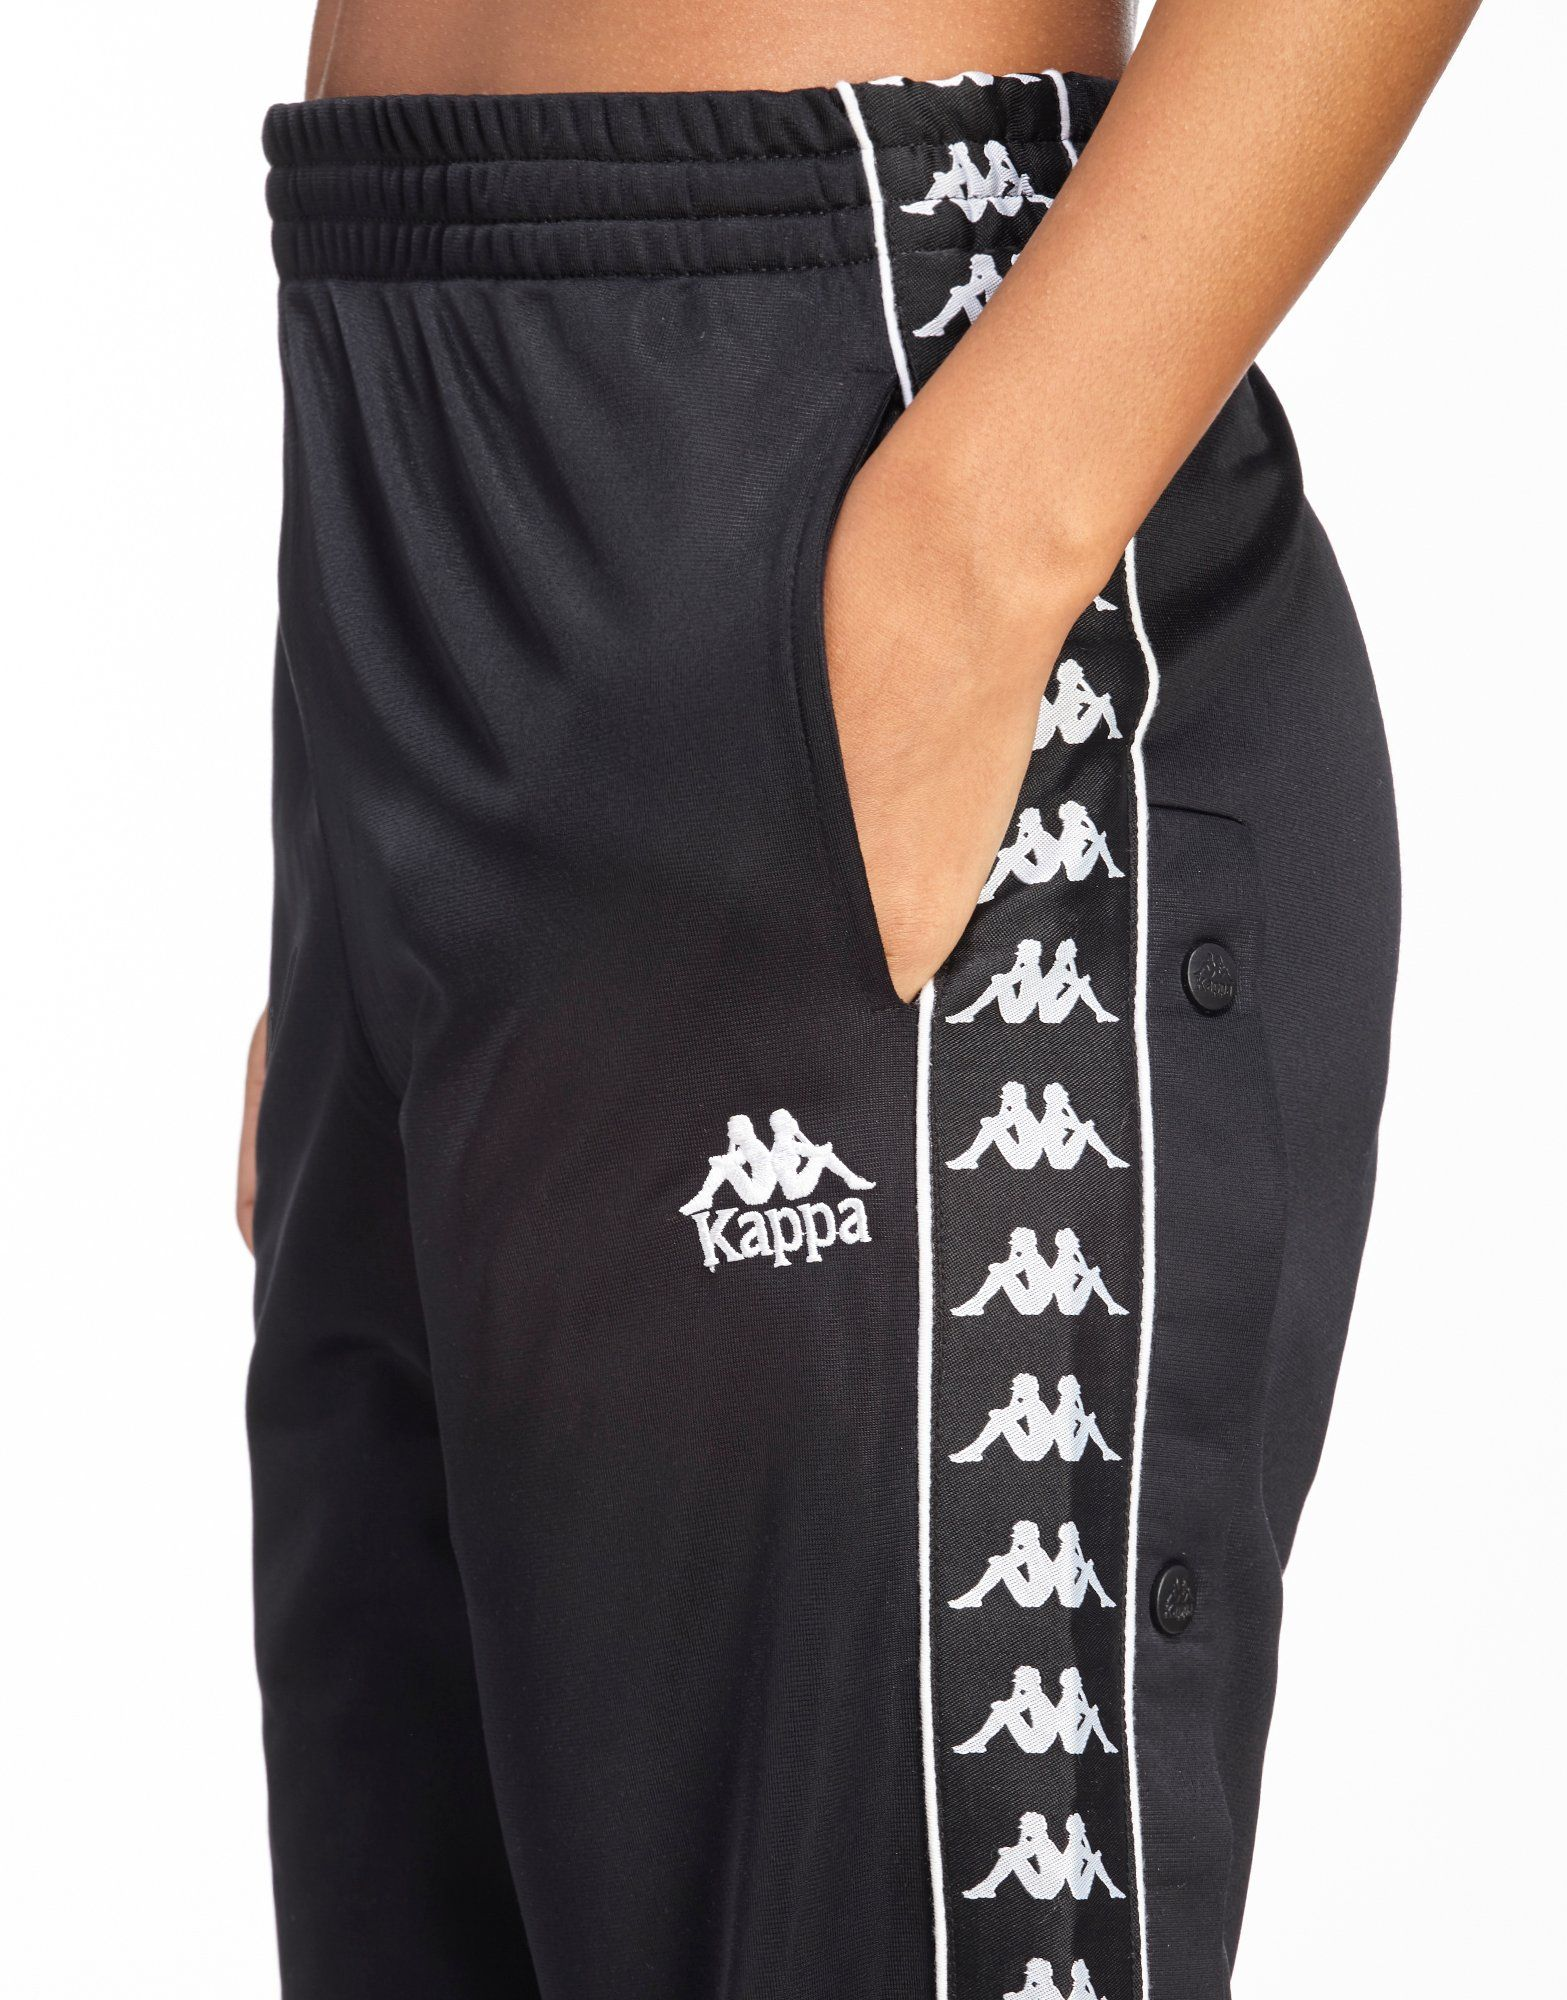 Kappa Authentic Popper Pants